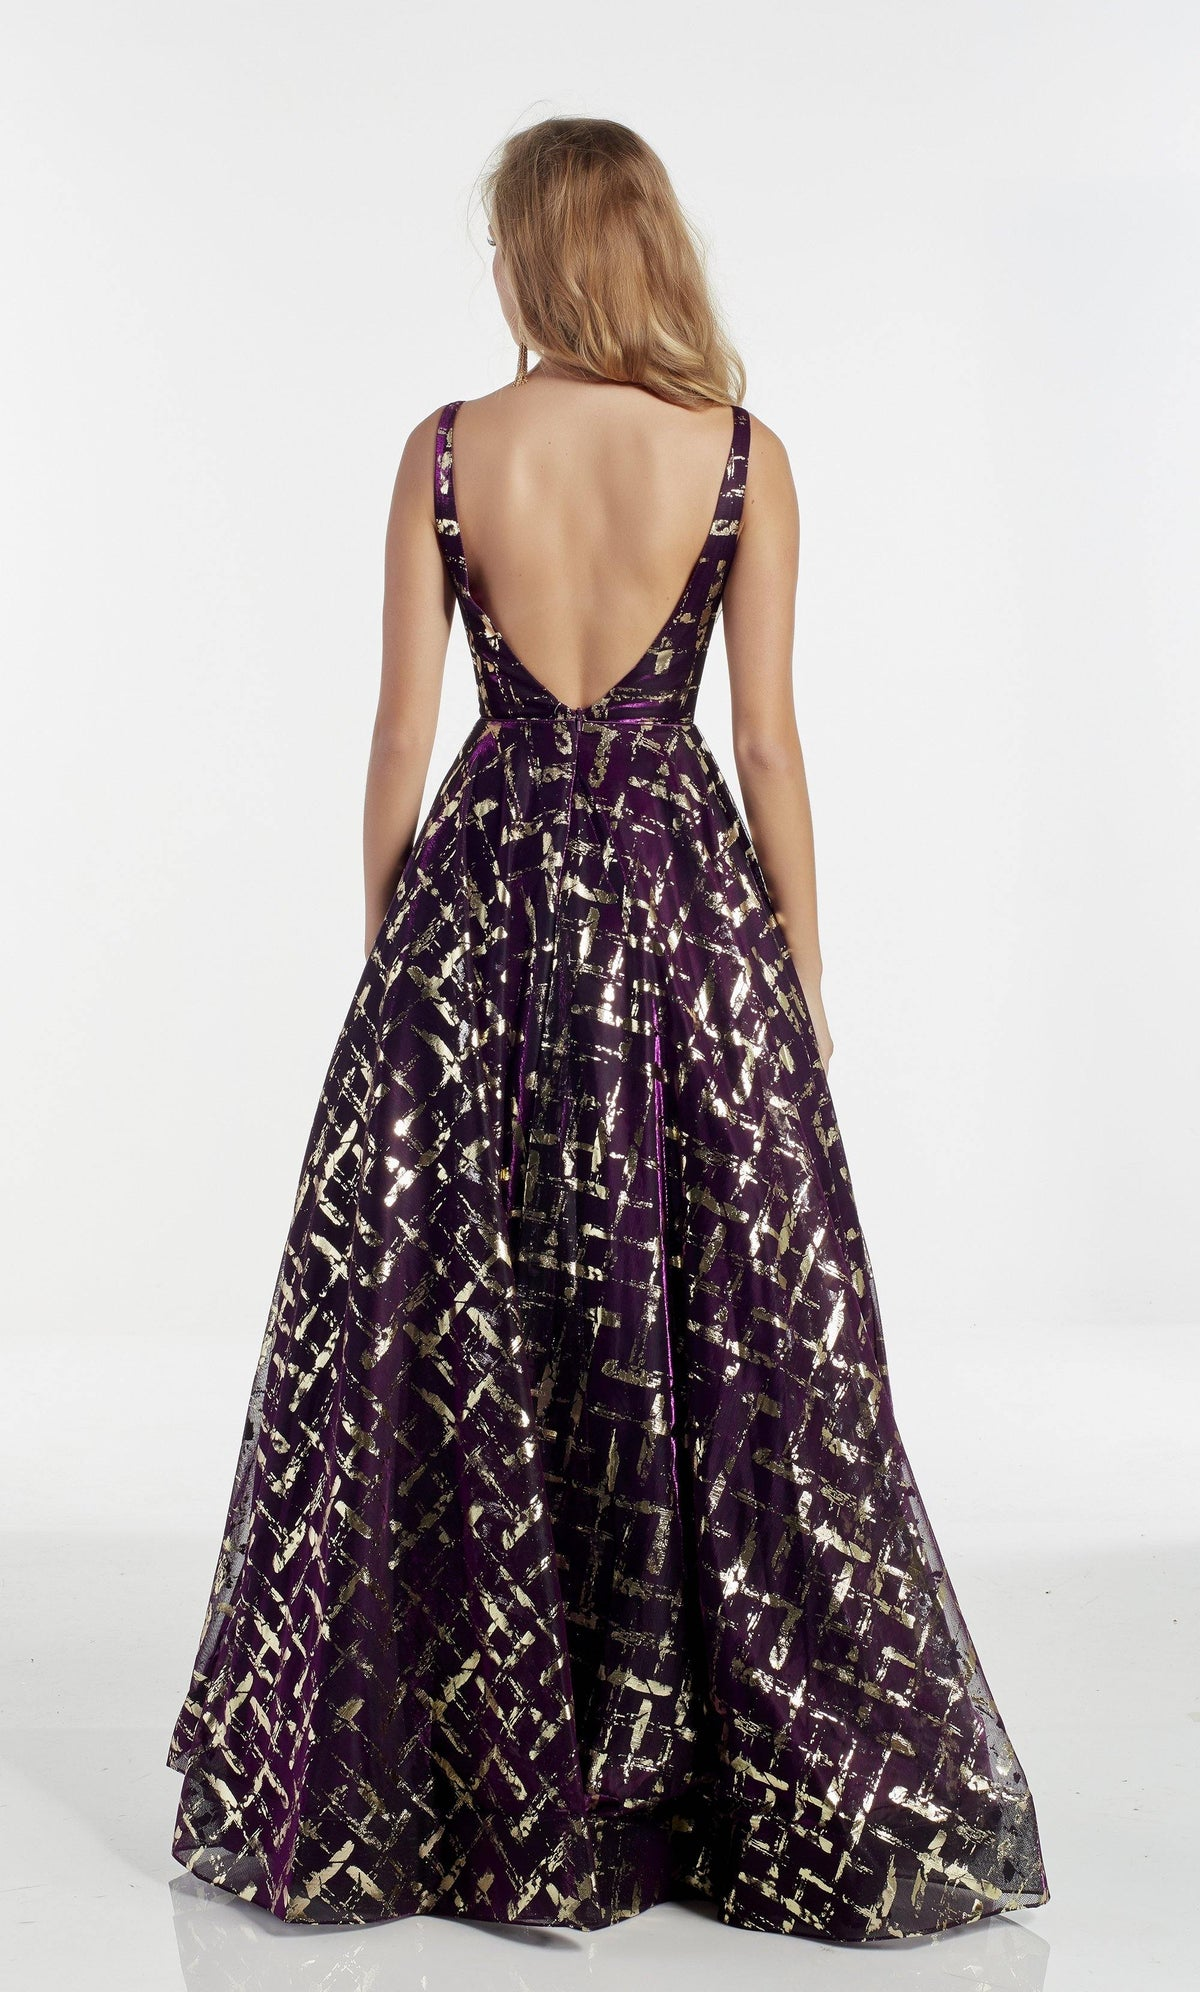 Dark purple ballgown with a beaded waist, enclosed back, and Gold foil detail